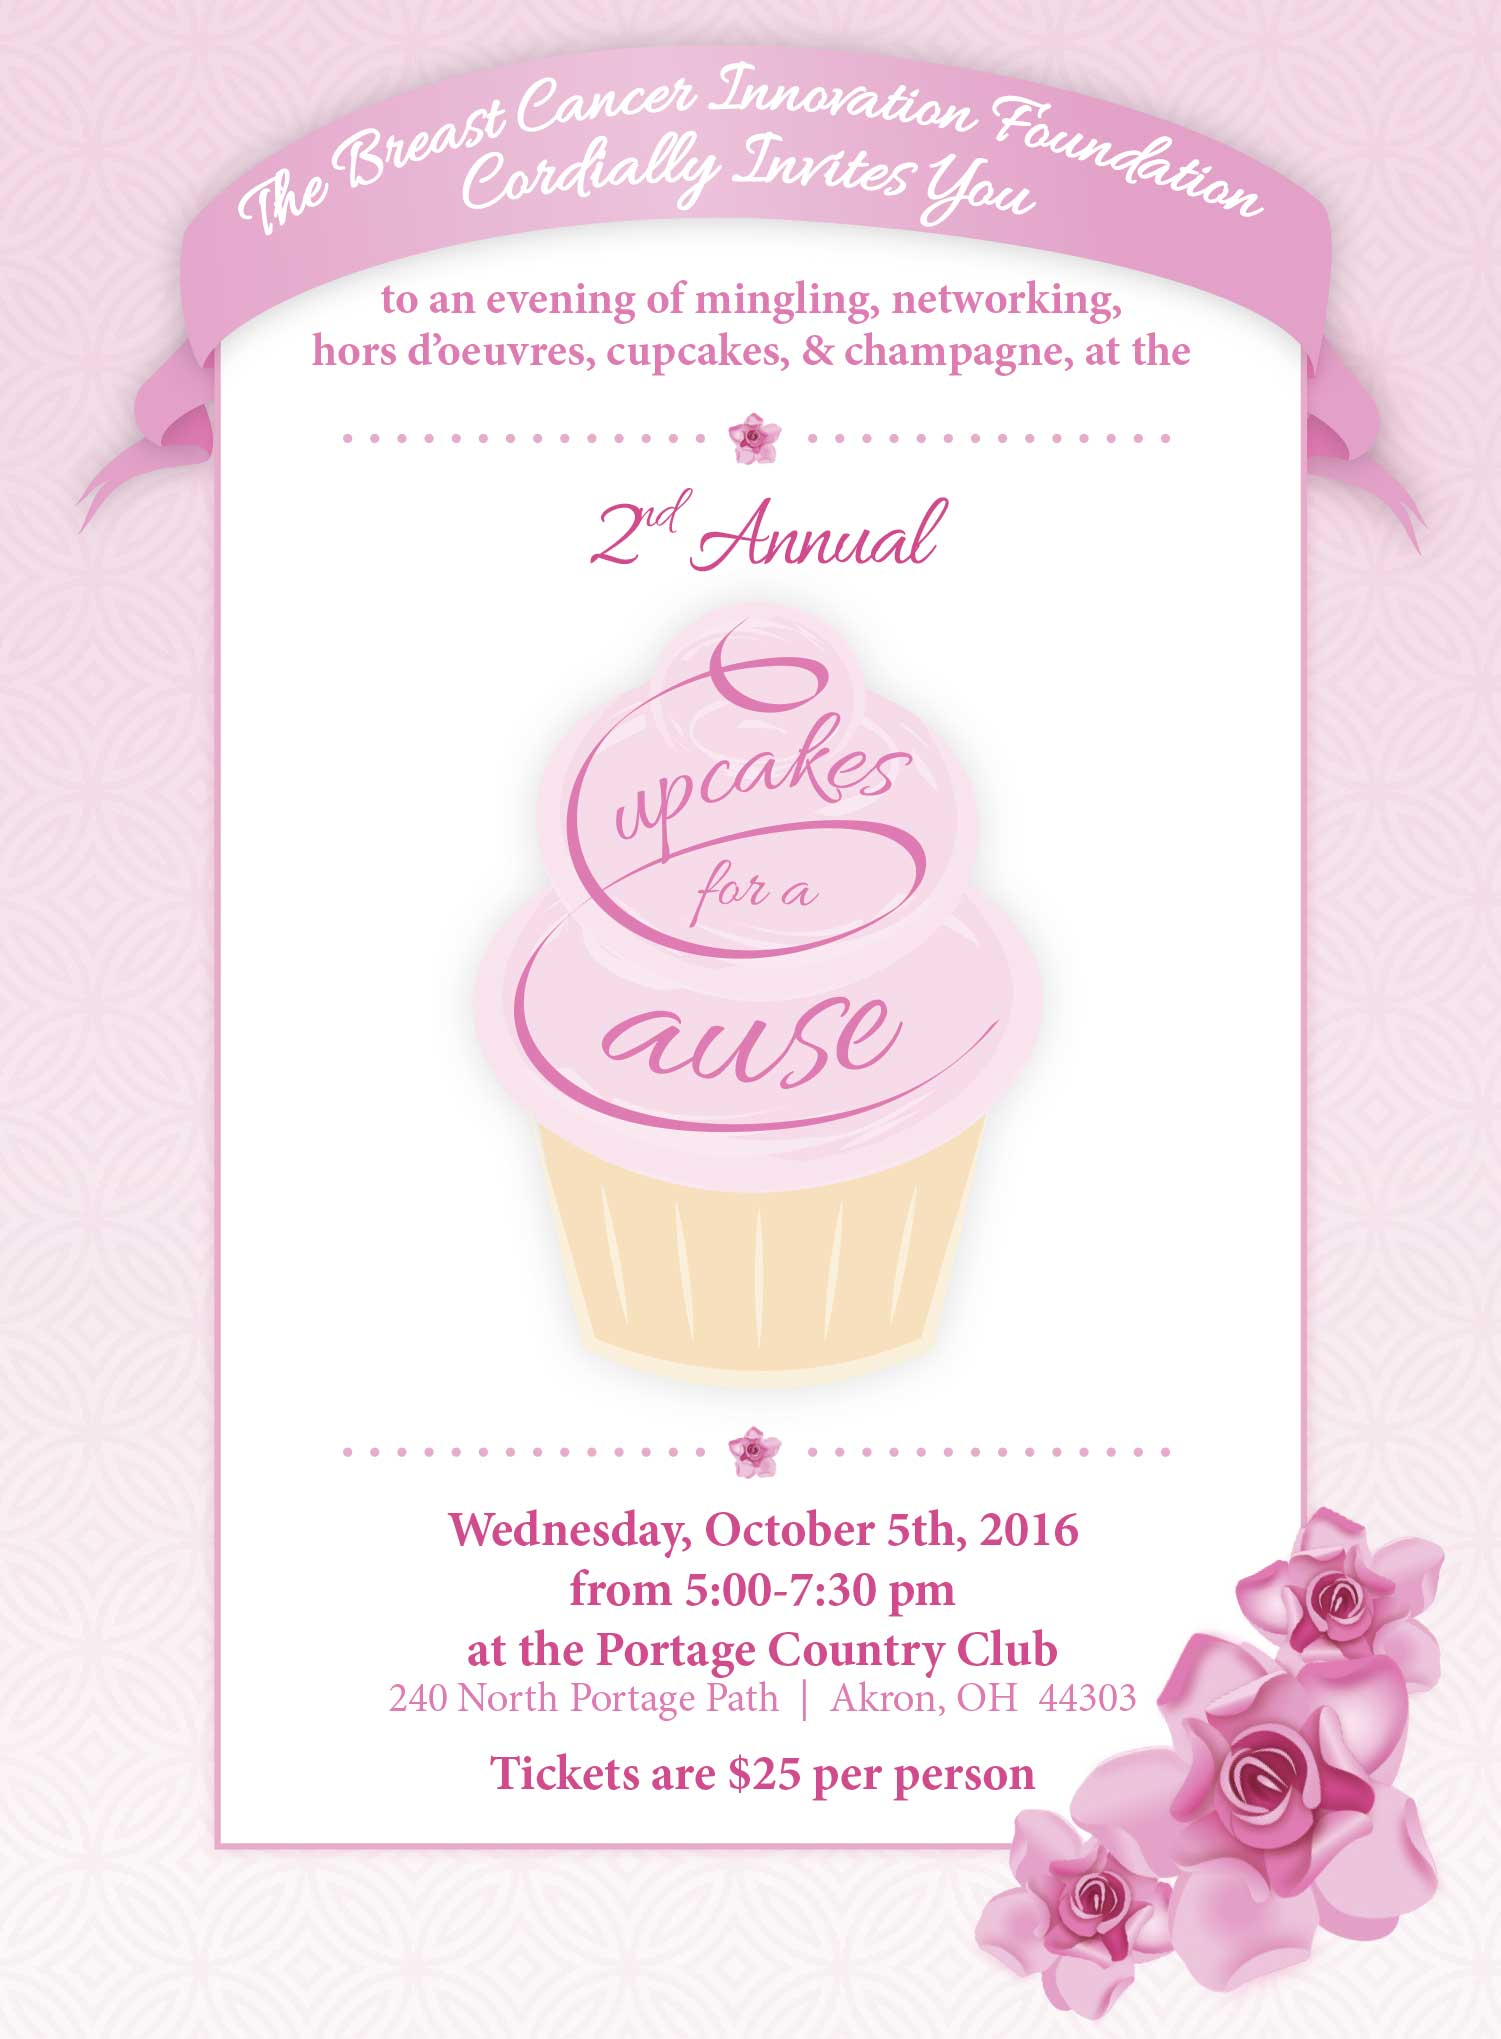 2nd Annual Cupcakes for a Cause | BREAST CANCER INNOVATION FOUNDATION